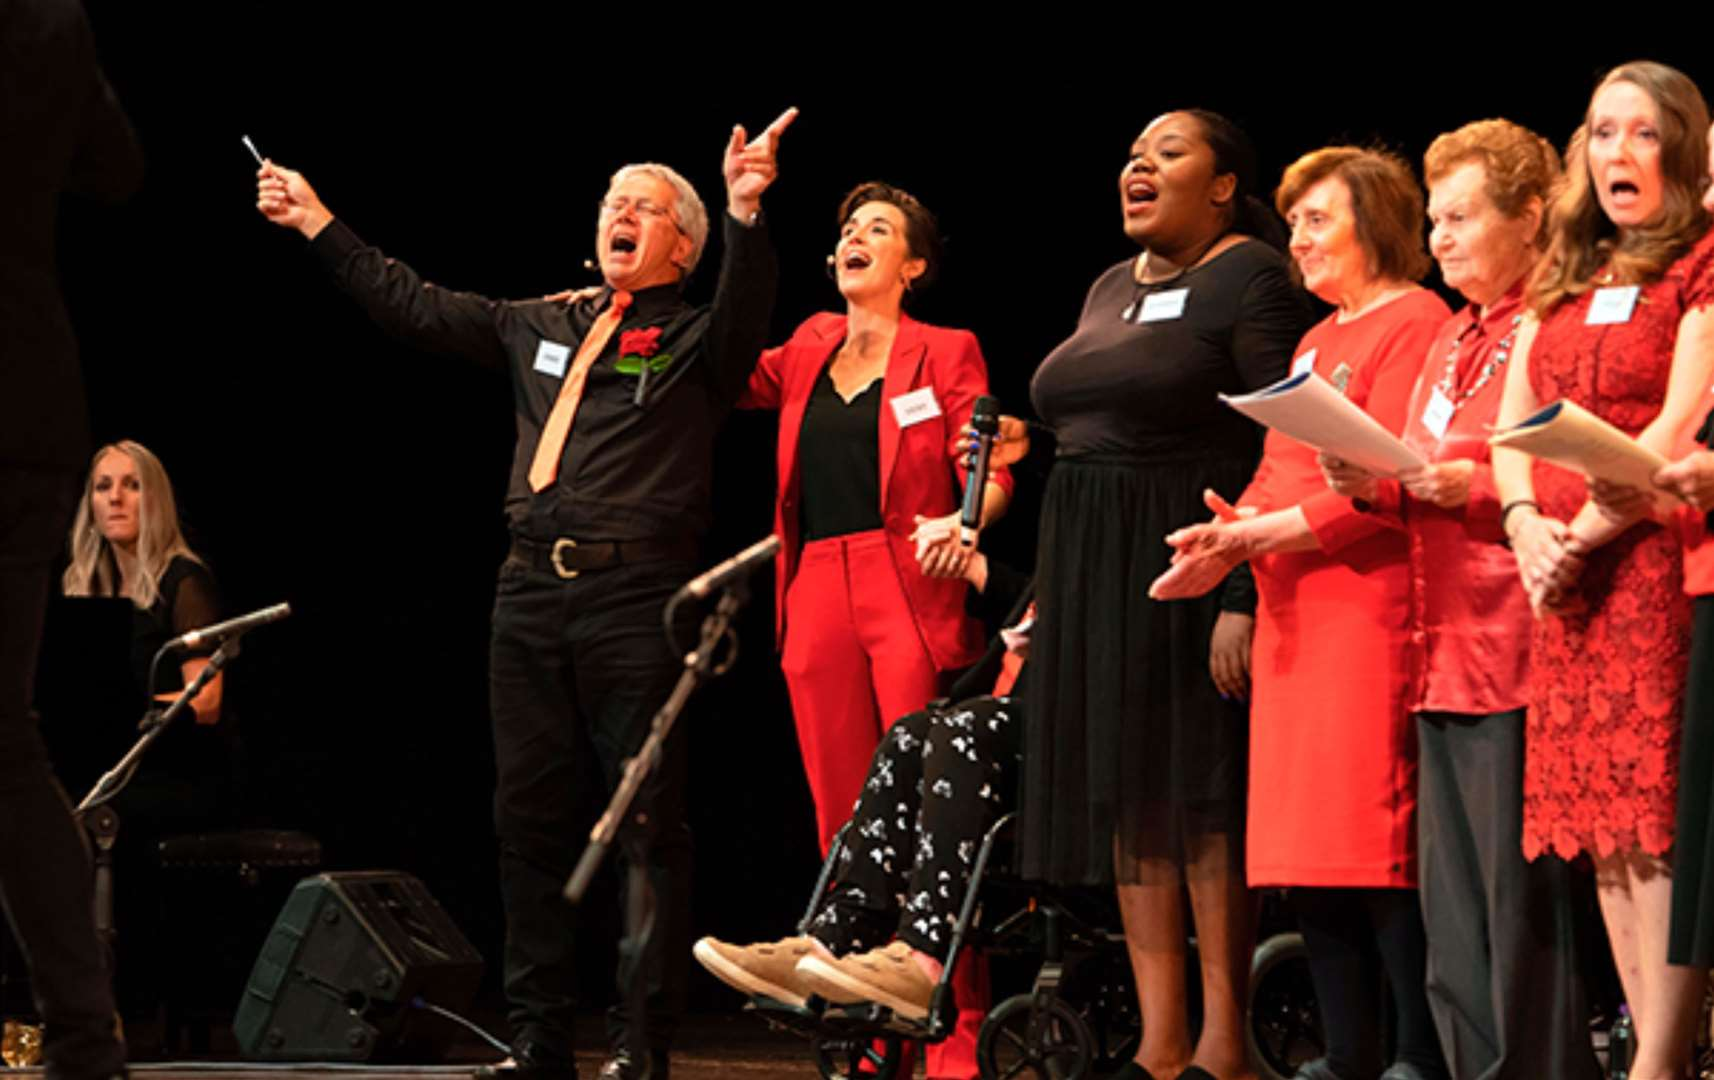 RETIRED teacher Chris Connell is pictured alongside Vicky McClure and other members of the dementia choir, performing on stage at the Royal Concert Hall, Nottingham.